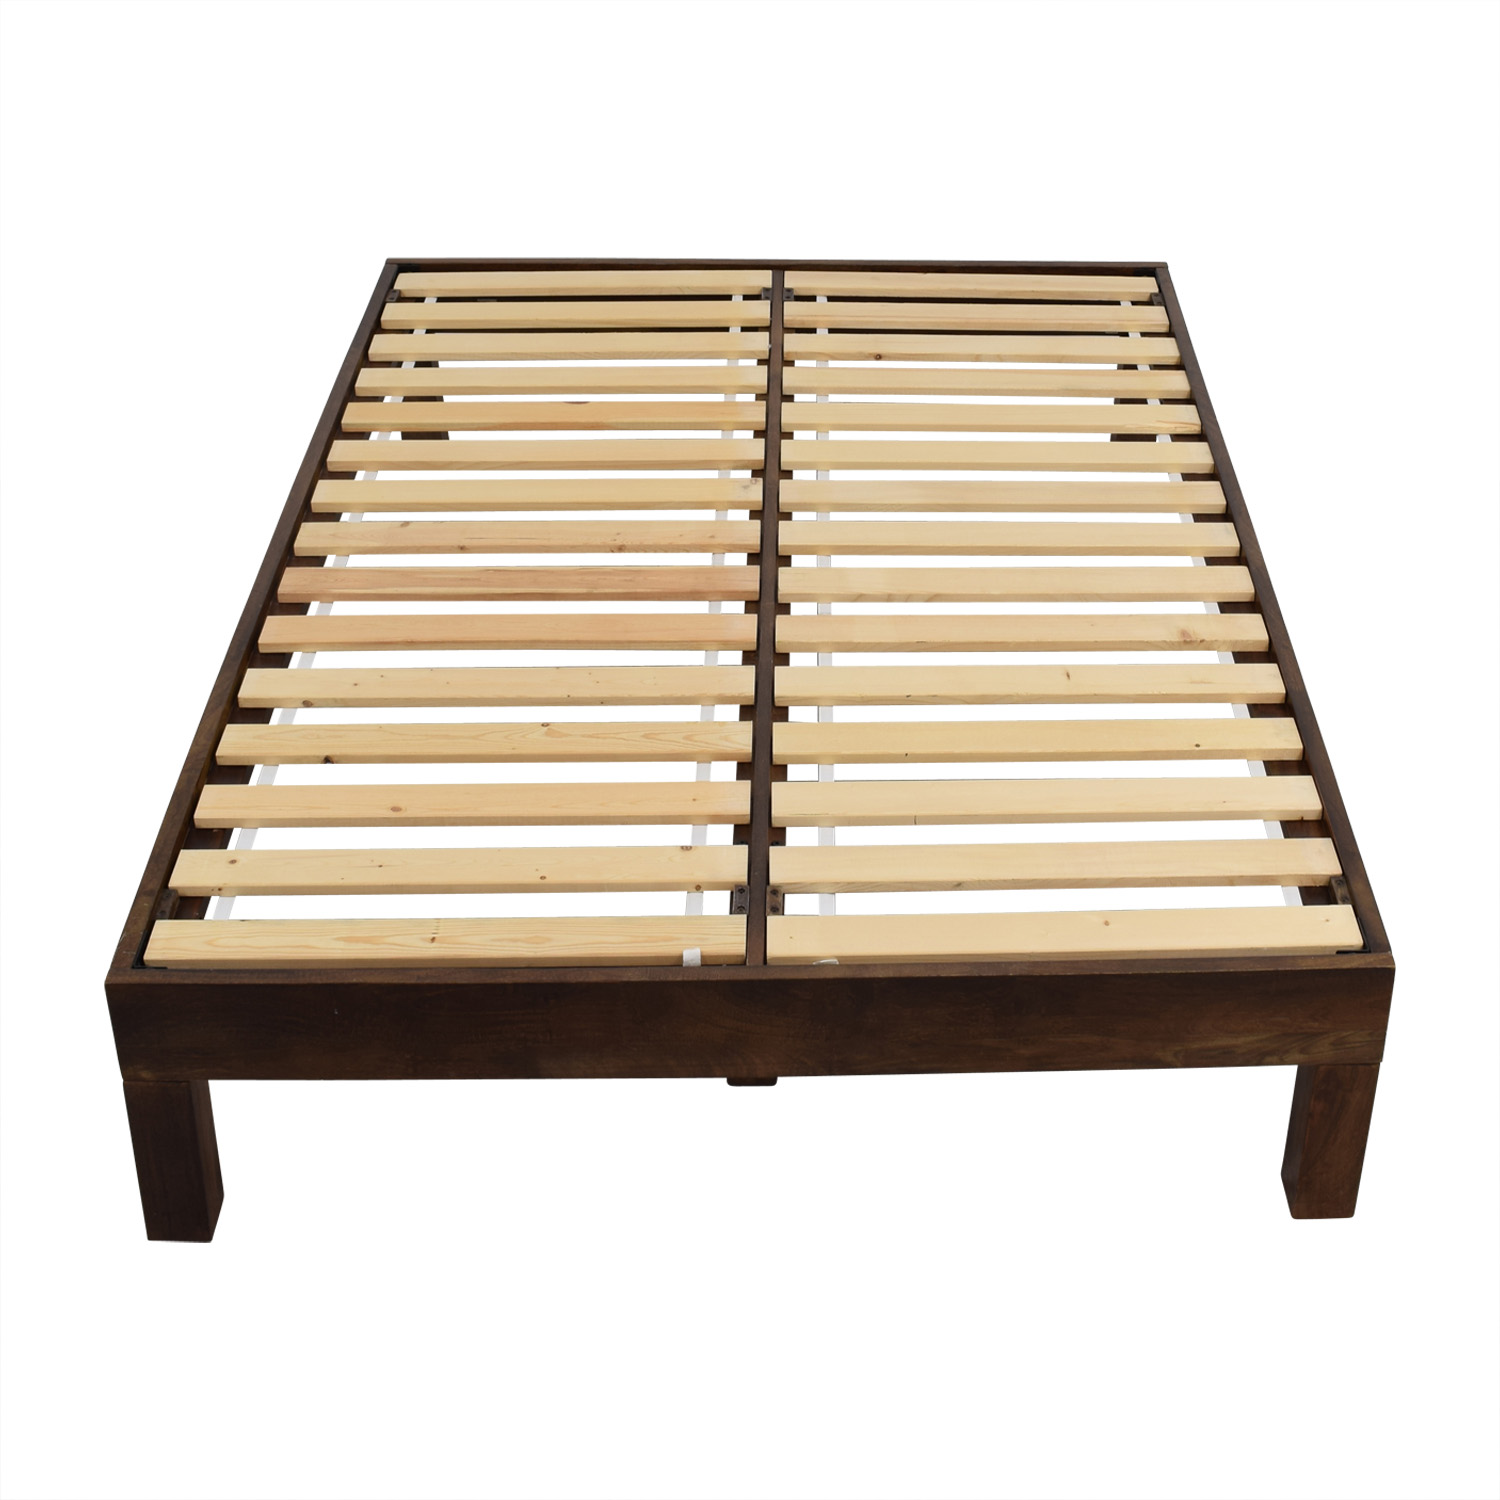 West Elm Boerum Full Bed Frame / Bed Frames